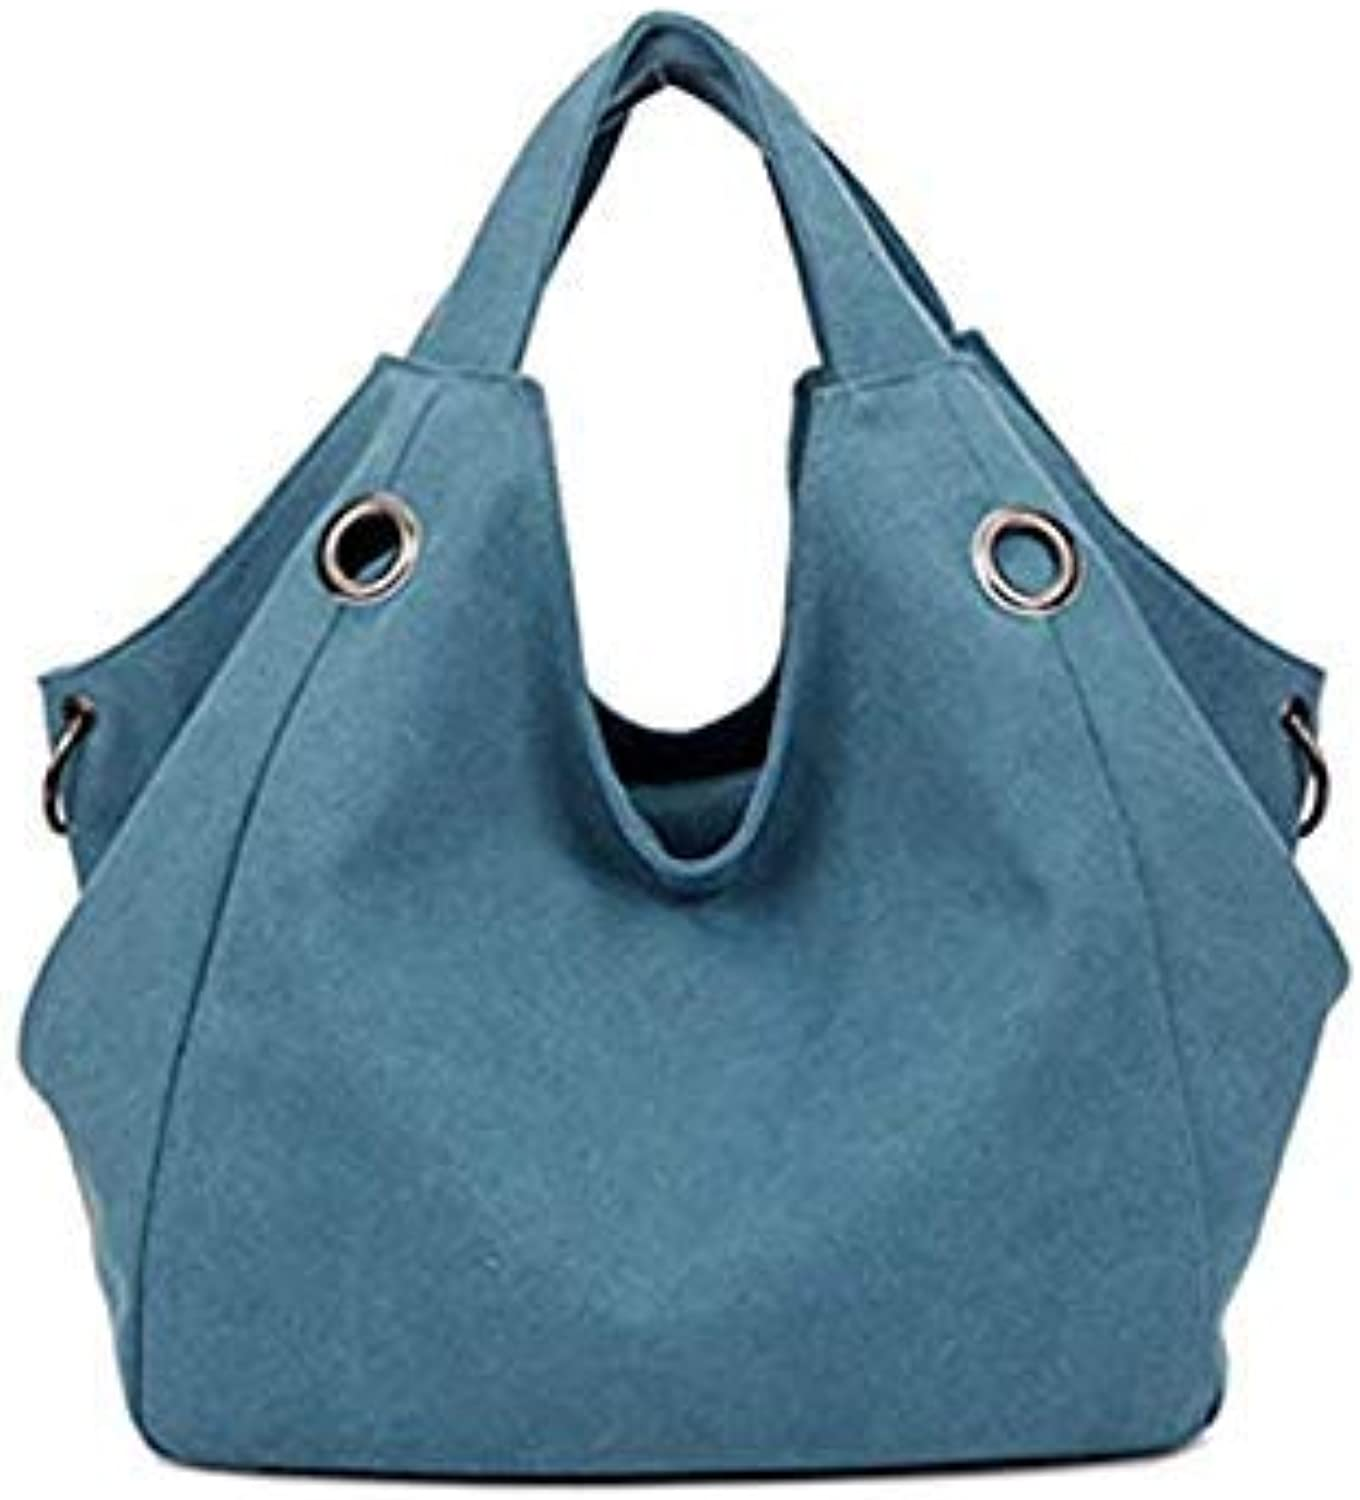 Bloomerang Top-Handle Bags Women Shoulder Bag Canvas Large Capacity Handbag for Ladies Female Big Tote Fashion Casual Handbag Women Bag color blueee 35CM